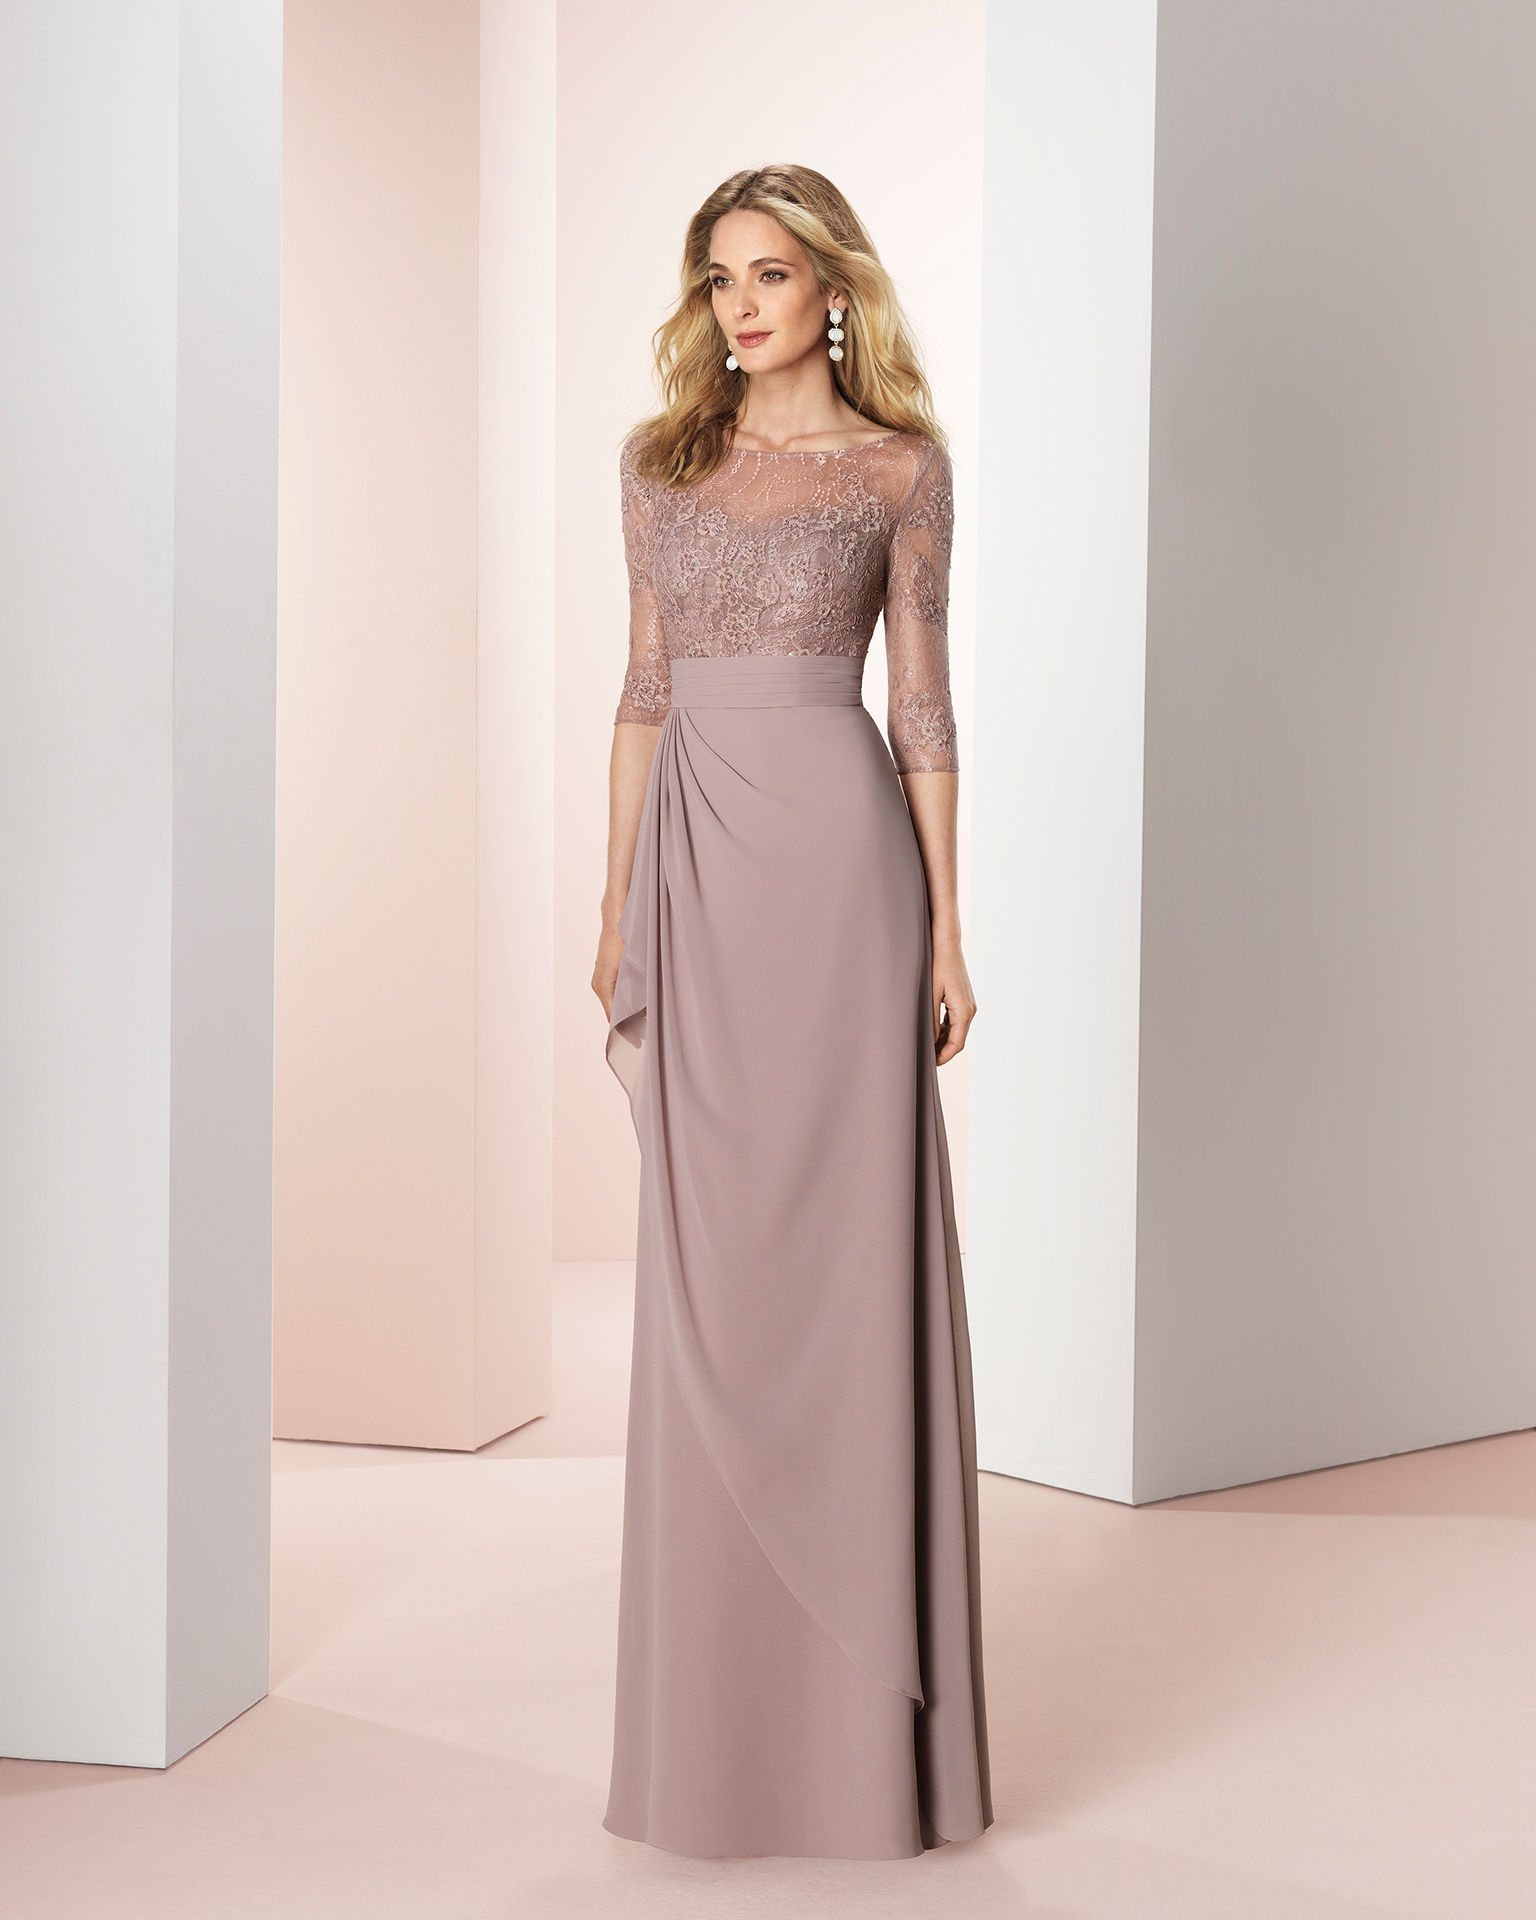 Long chiffon cocktail dress with beading and lace detailing on bodice. Available in mink,